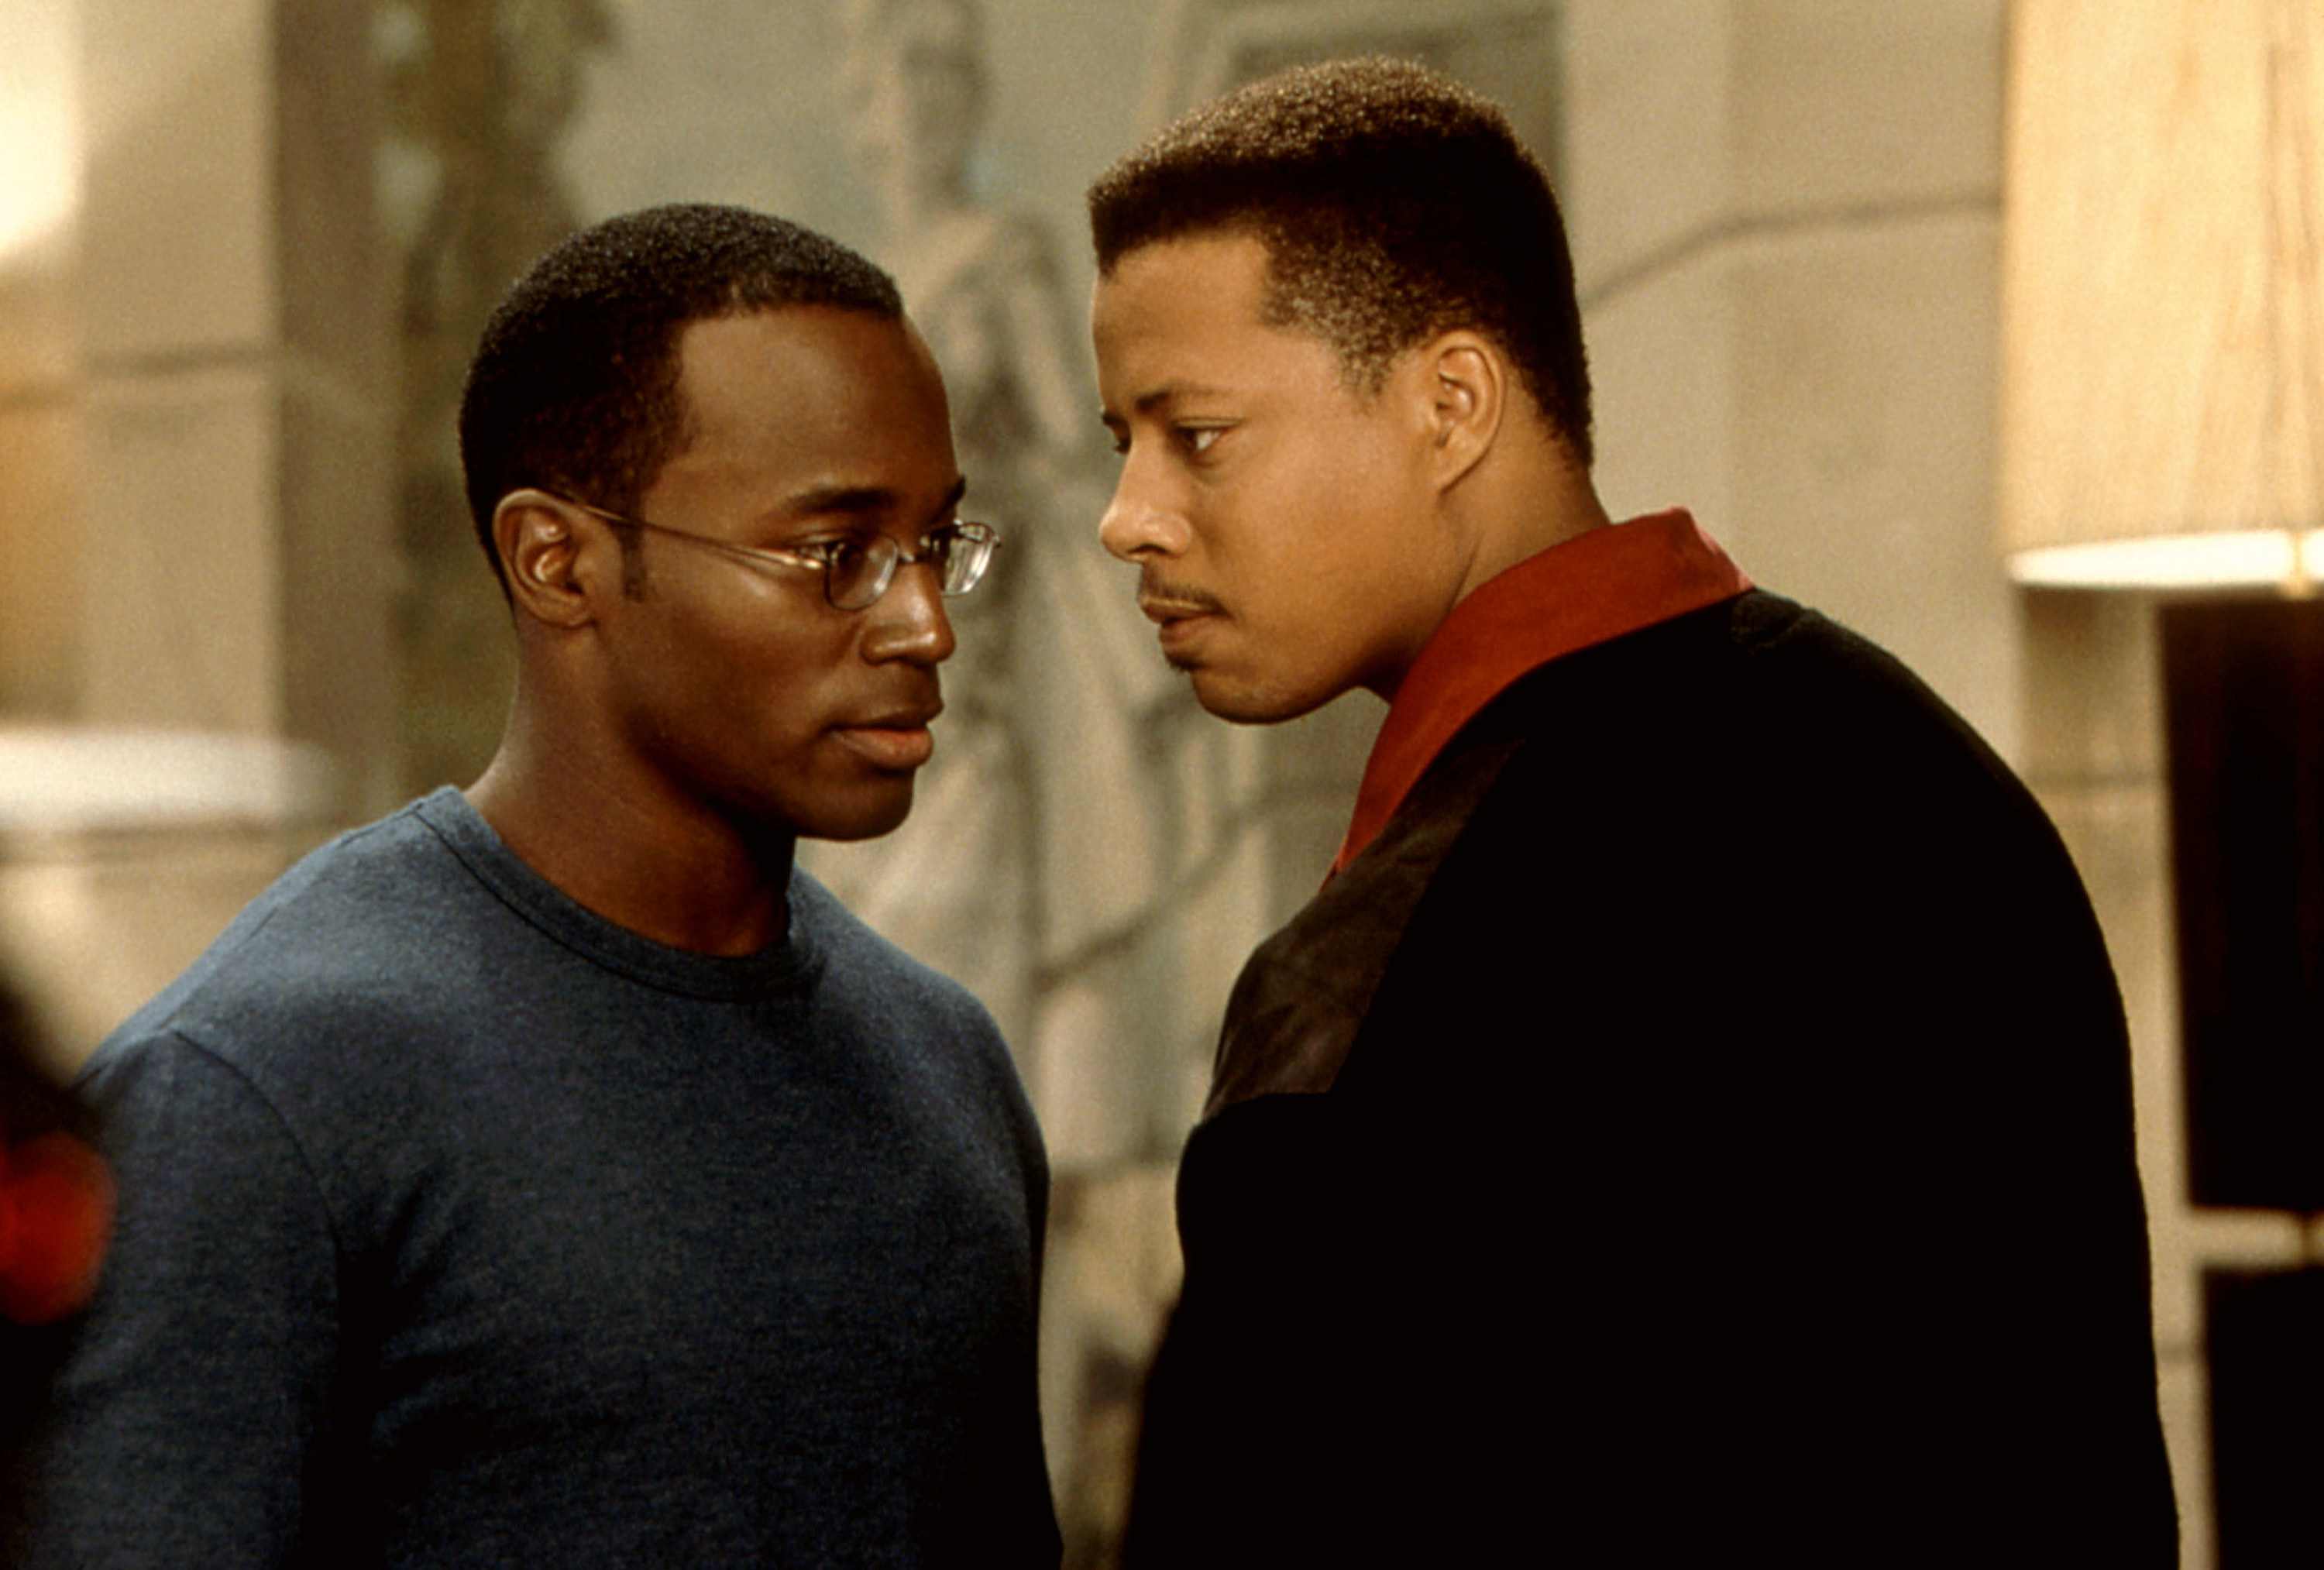 Taye Diggs and Terrence Howard stare at each other